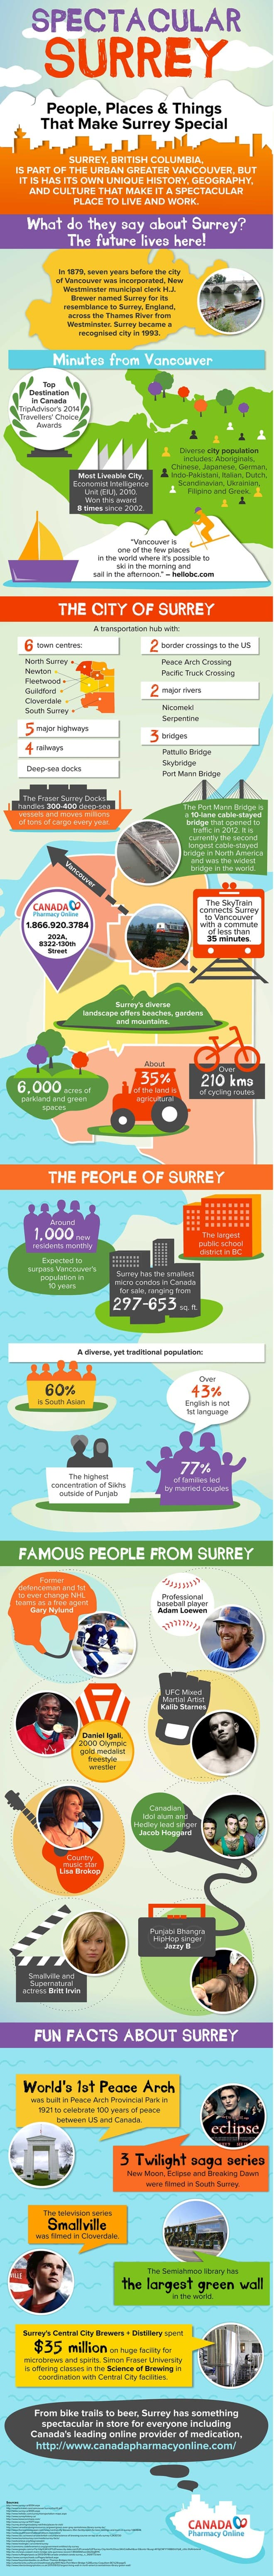 Spectacular Surrey infographic